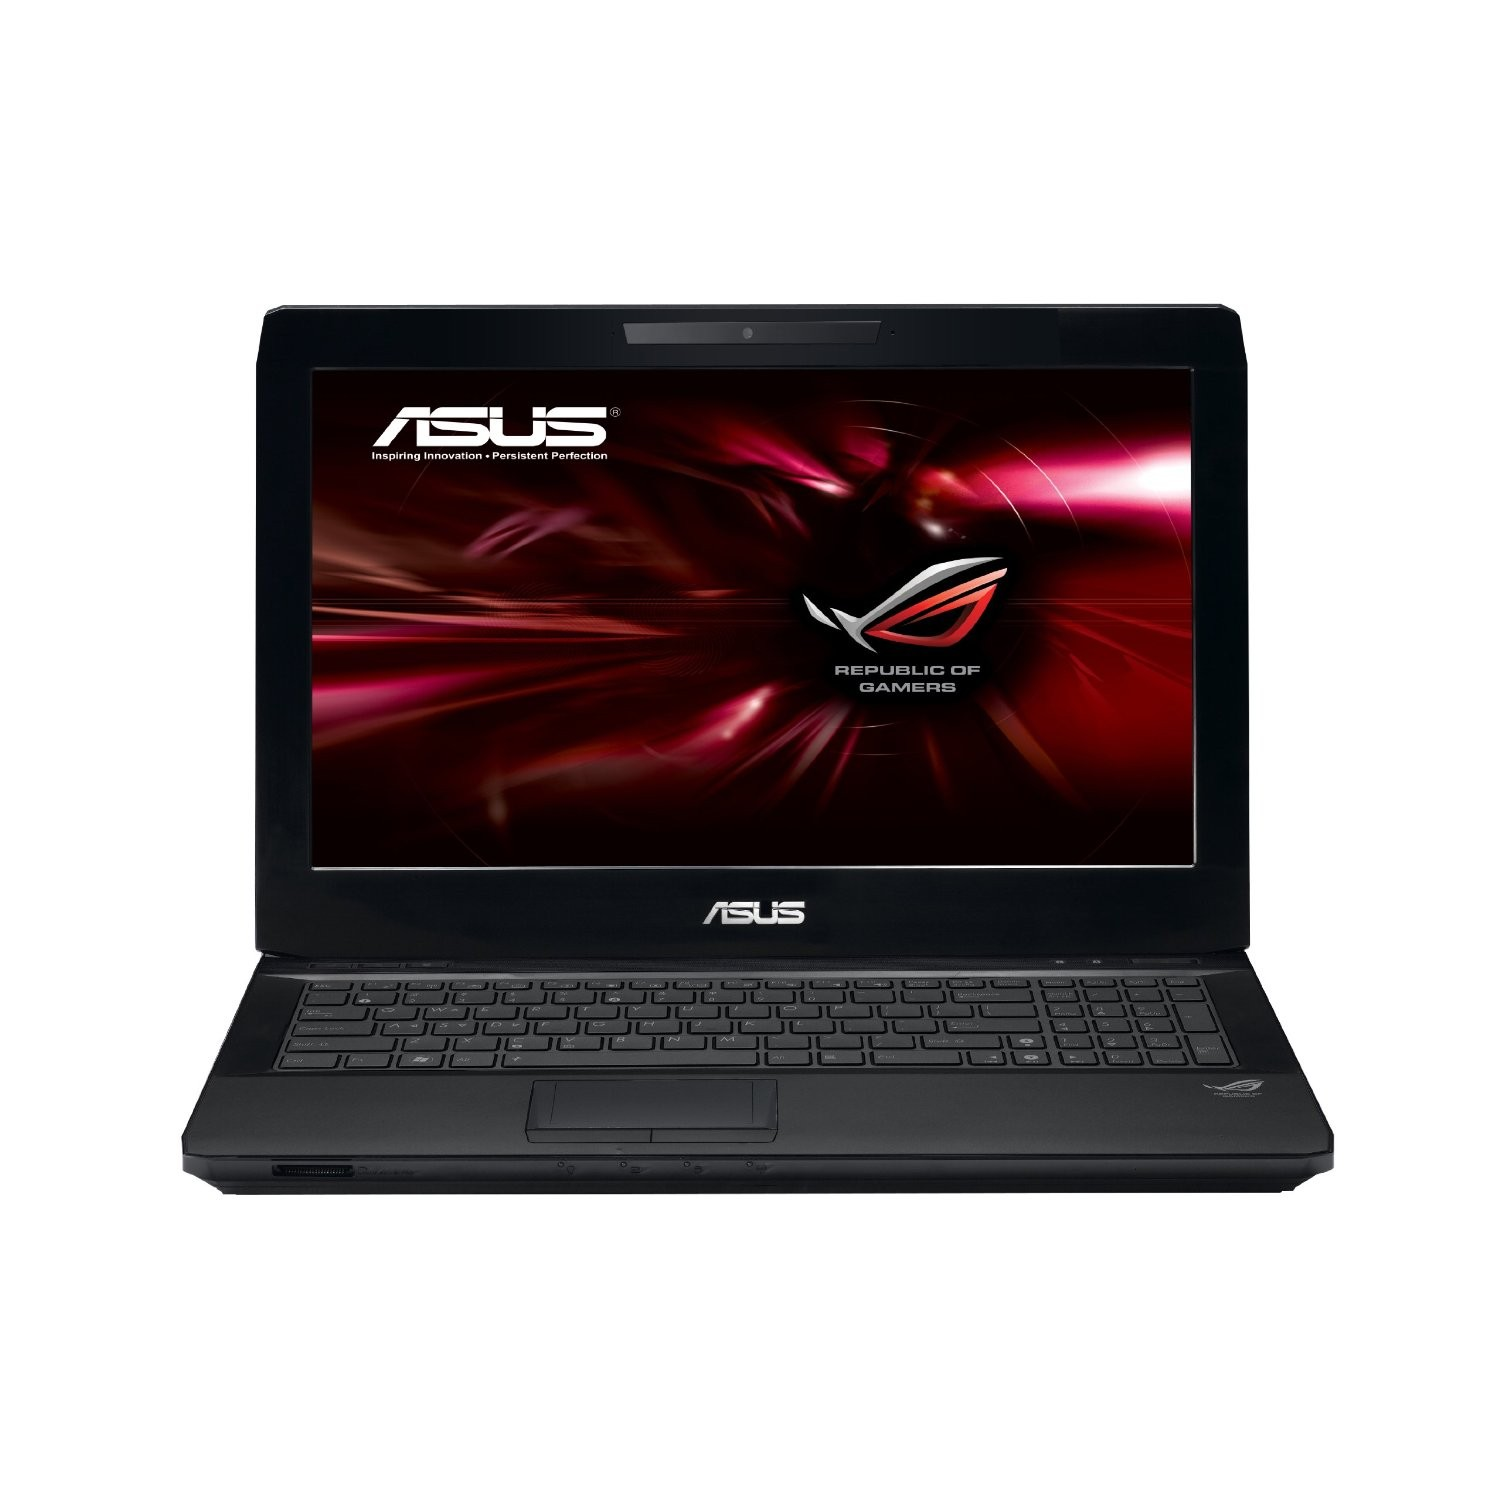 ASUS G53SX INTEL MANAGEMENT DESCARGAR CONTROLADOR